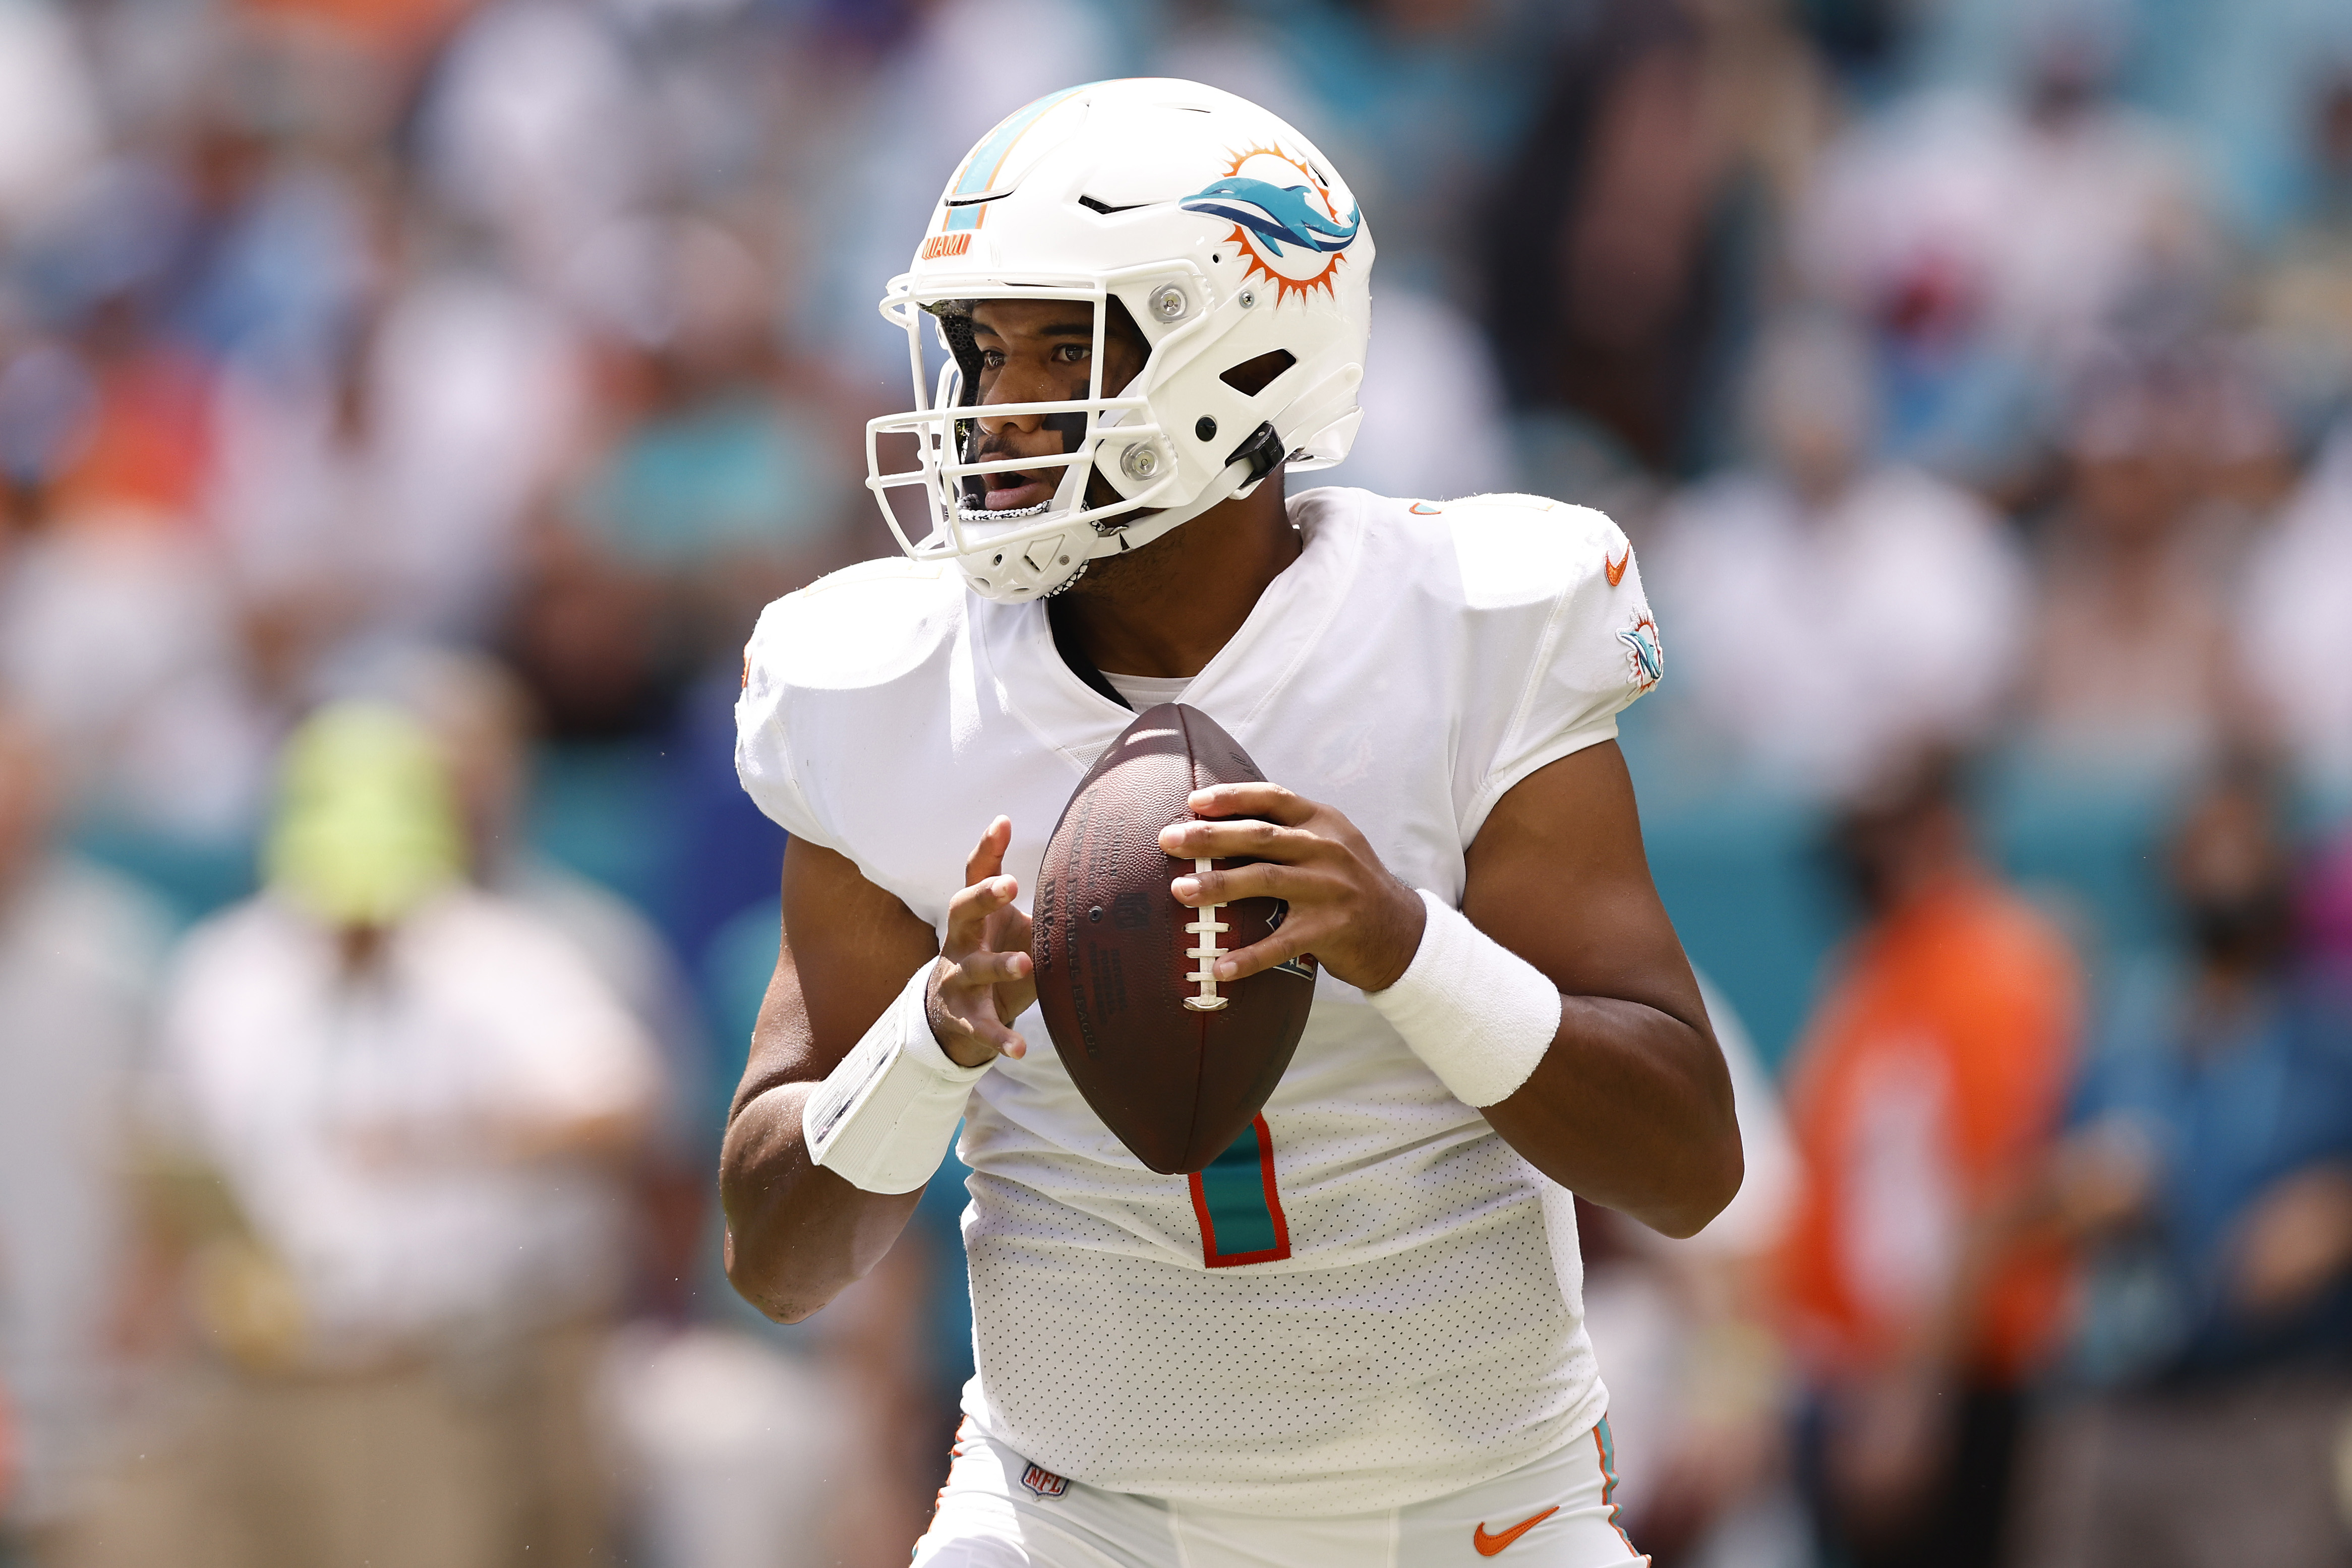 Tua Tagovailoa #1 of the Miami Dolphins looks to pass against the Buffalo Bills during the first quarter at Hard Rock Stadium on September 19, 2021 in Miami Gardens, Florida.